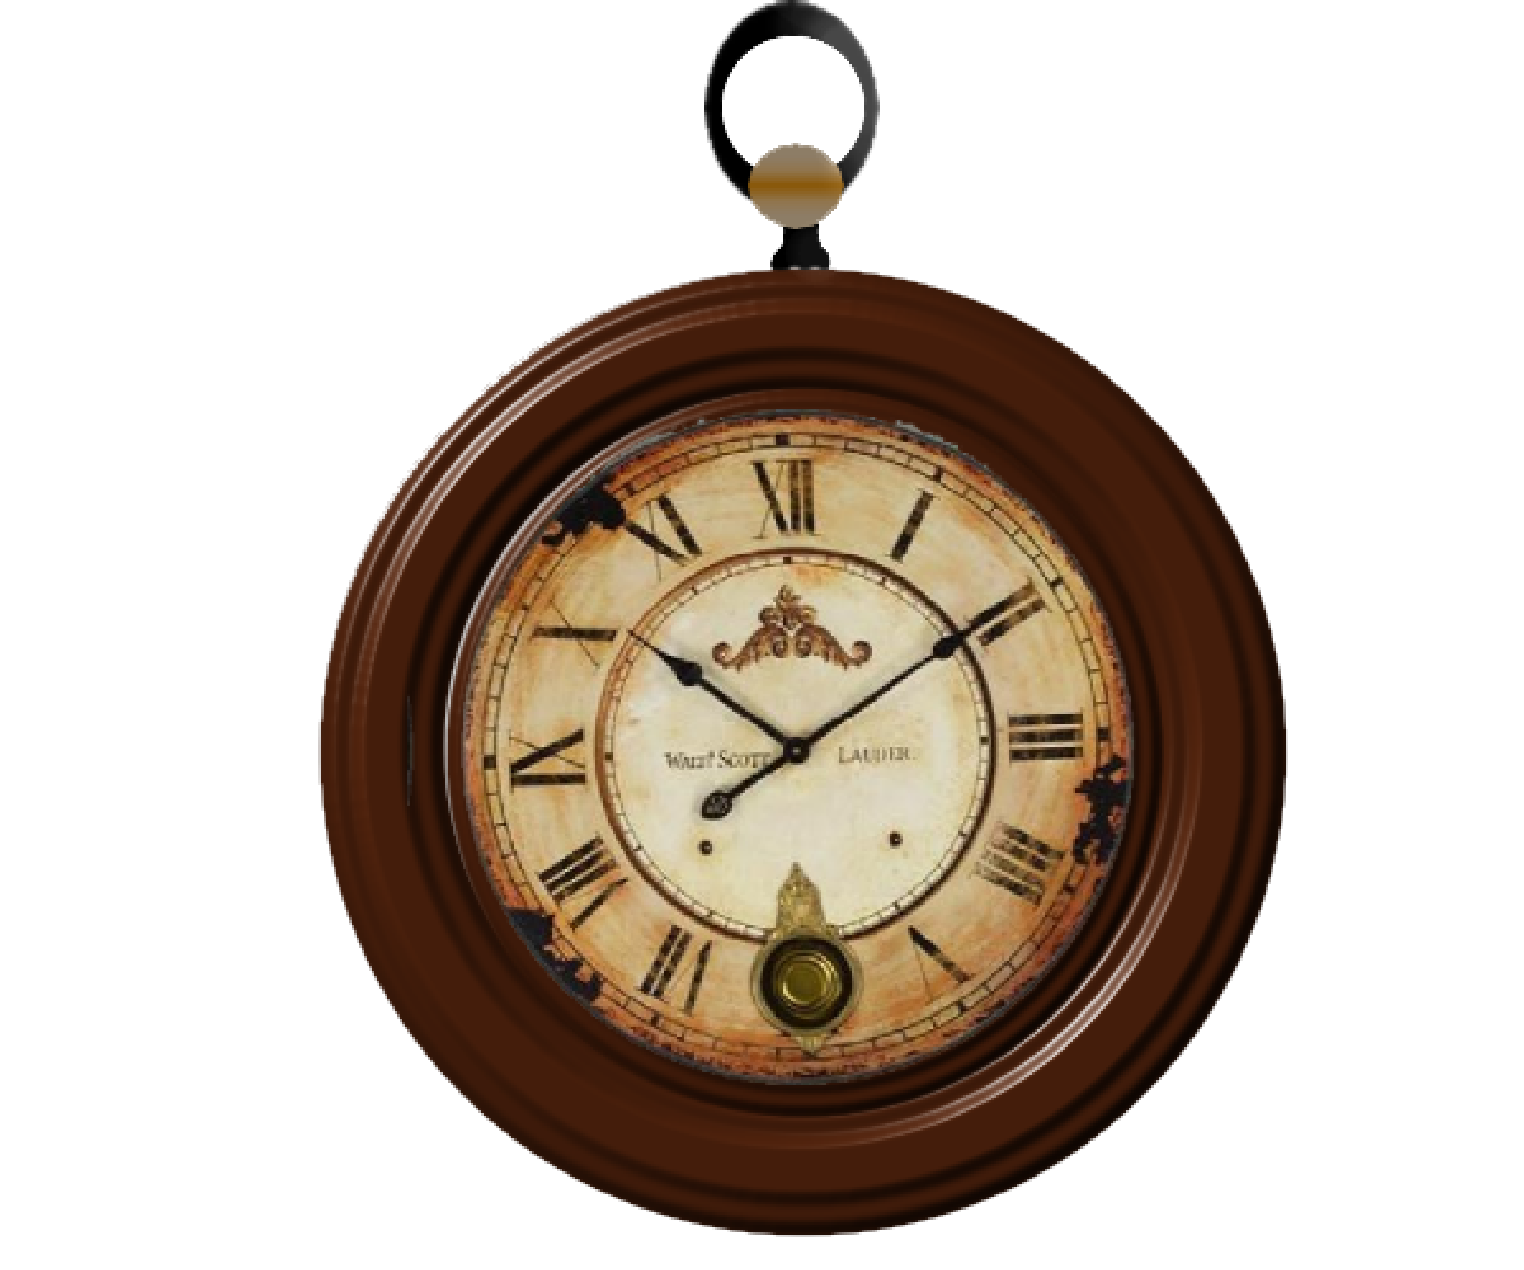 Download Vintage Clock PNG Image For Designing Projects.